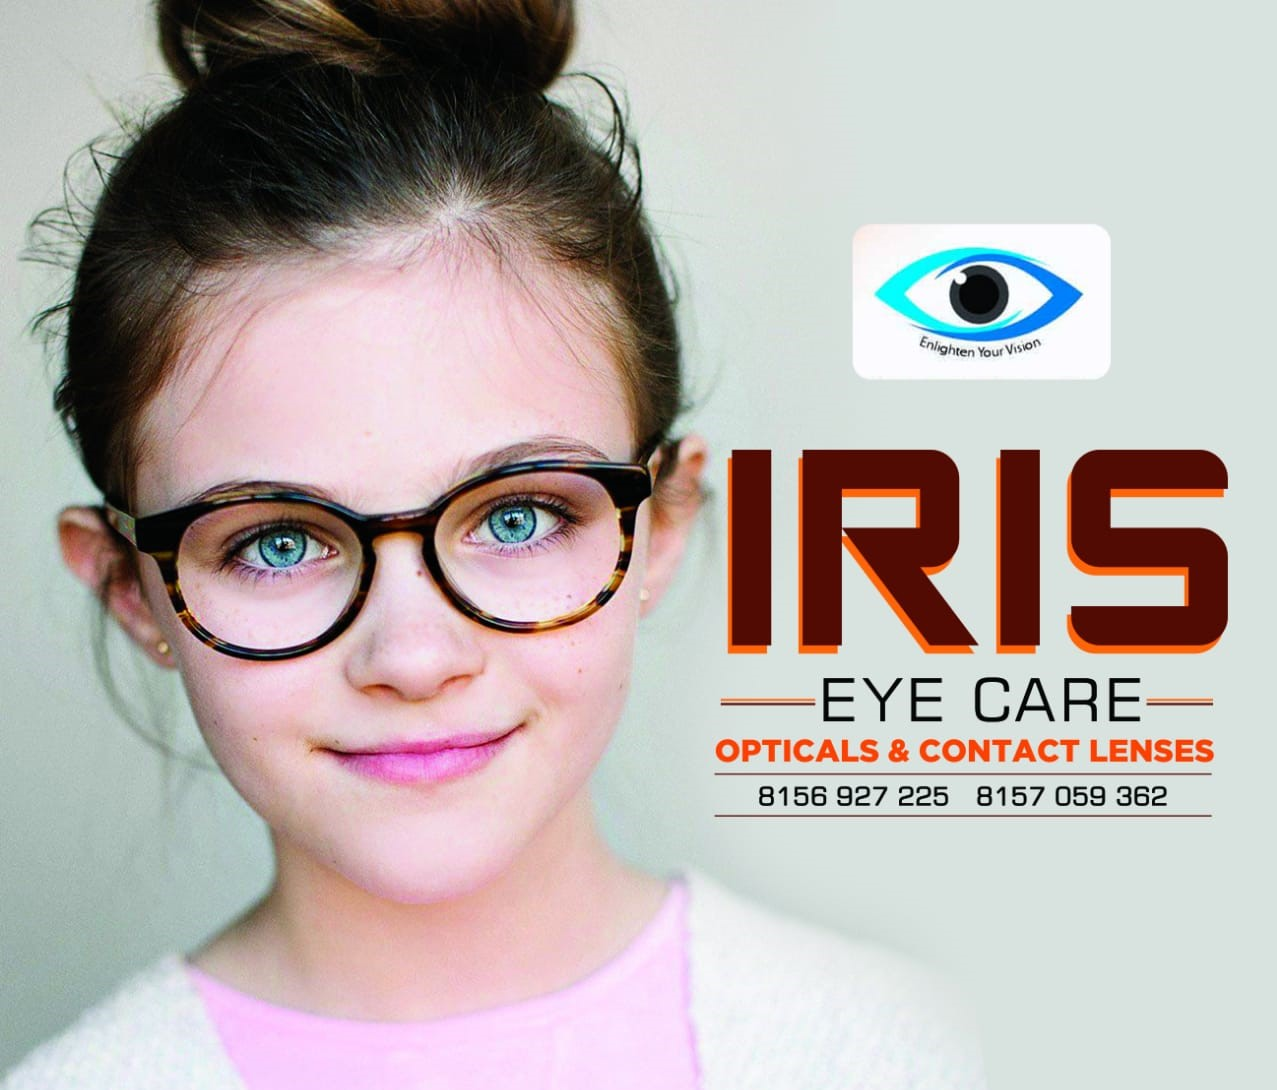 Iris Eye Care - Best Eye Care...